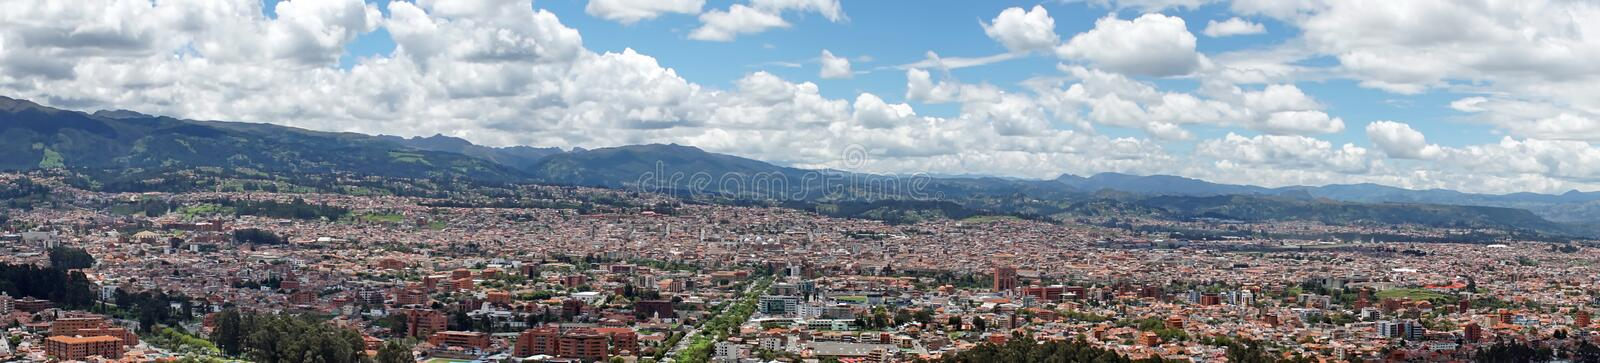 Panoramic overhead view of Cuenca royalty free stock image